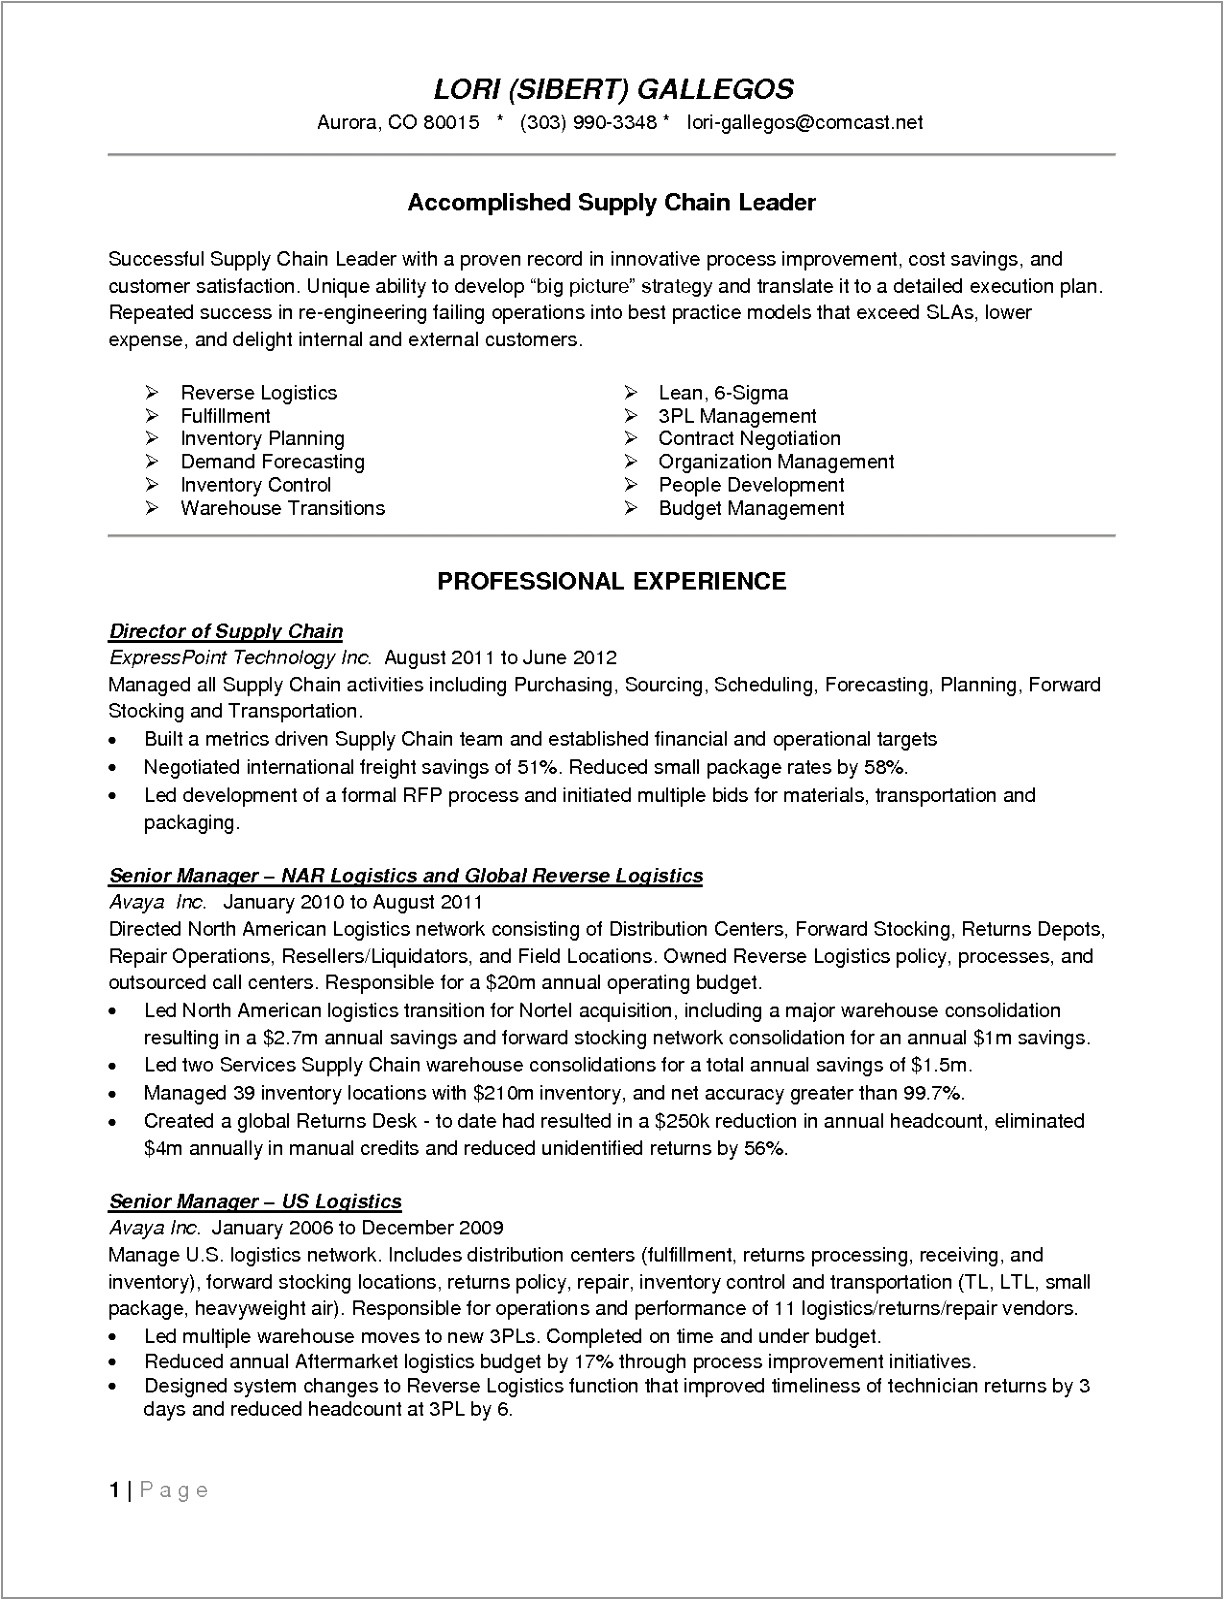 3pl contract template